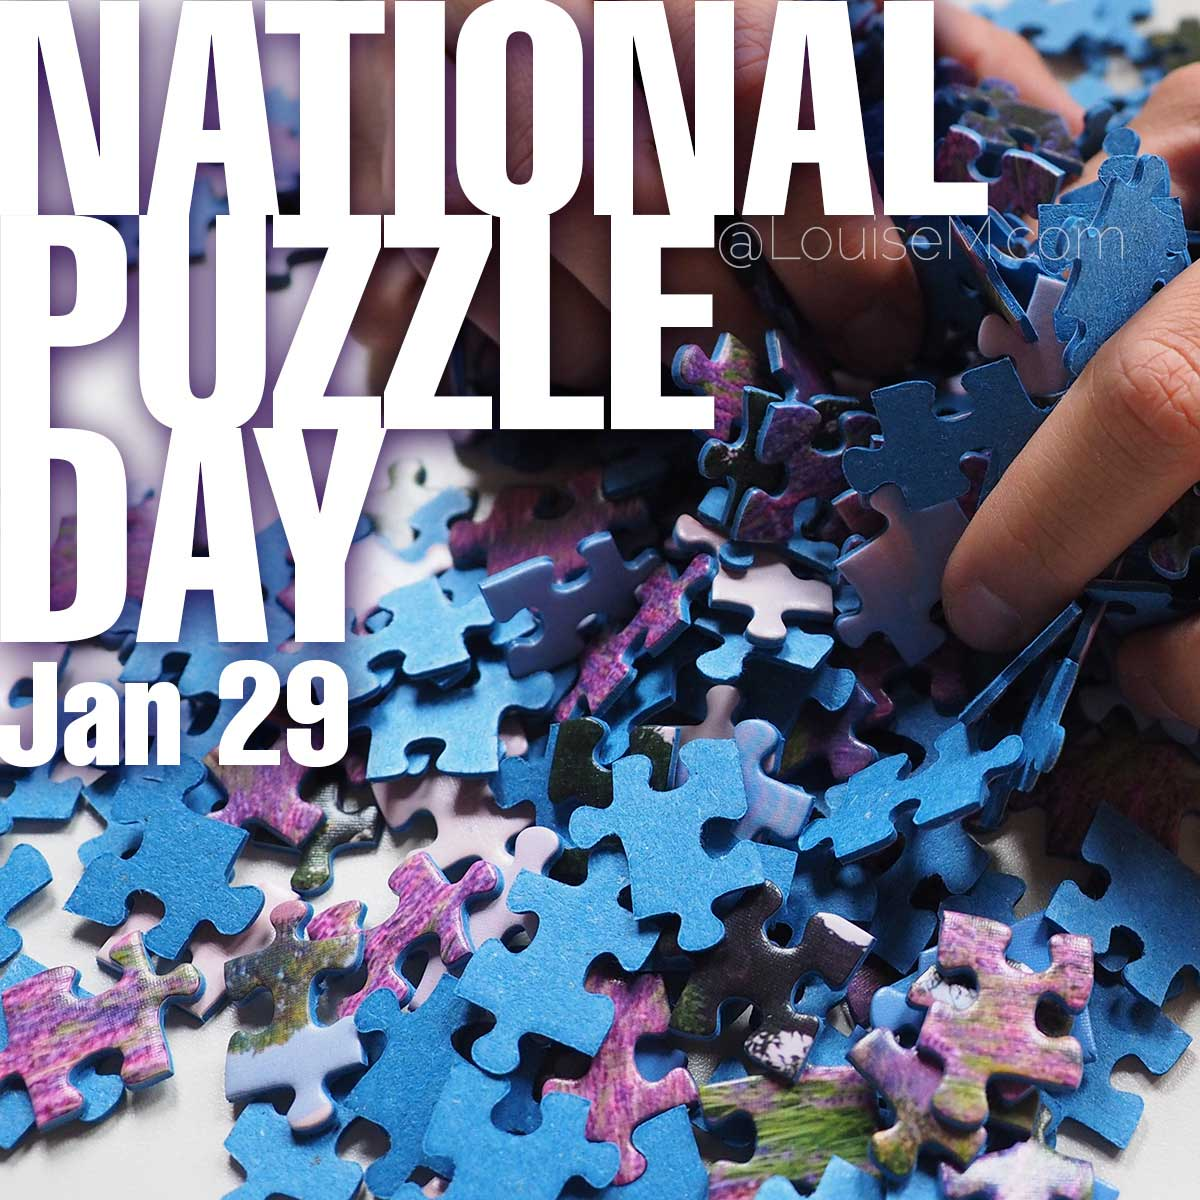 National Puzzle Day text over jigsaw puzzle photo.